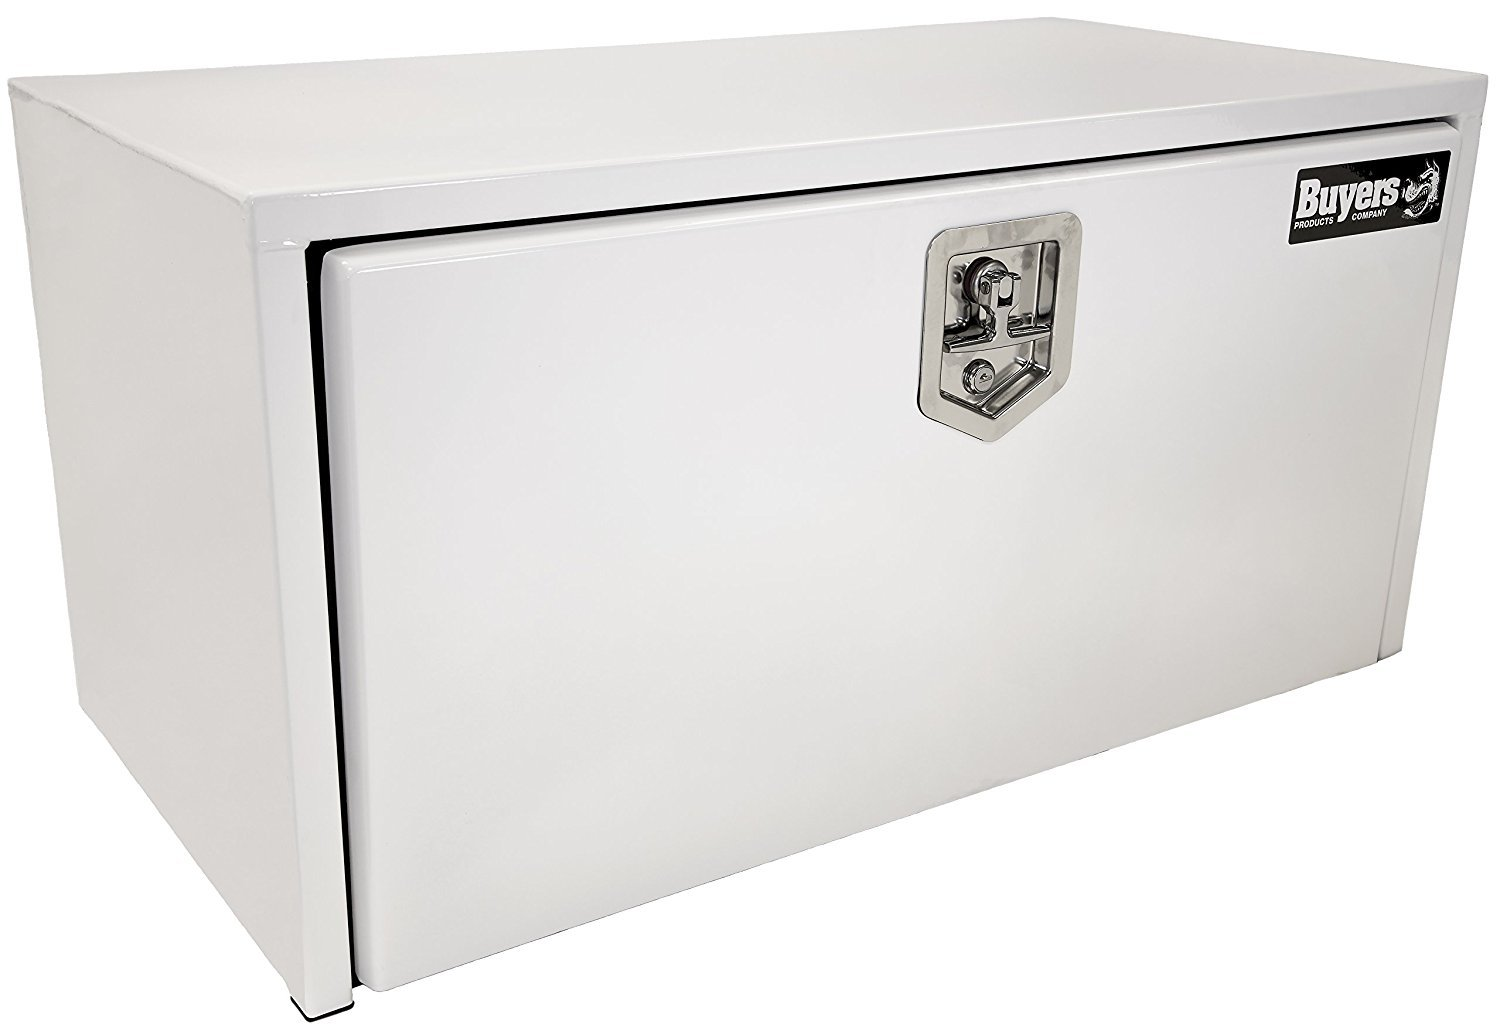 Buyers Products 1703405 White Steel Underbody Truck Box w/T-Handle Latch (14x16x36 Inch)